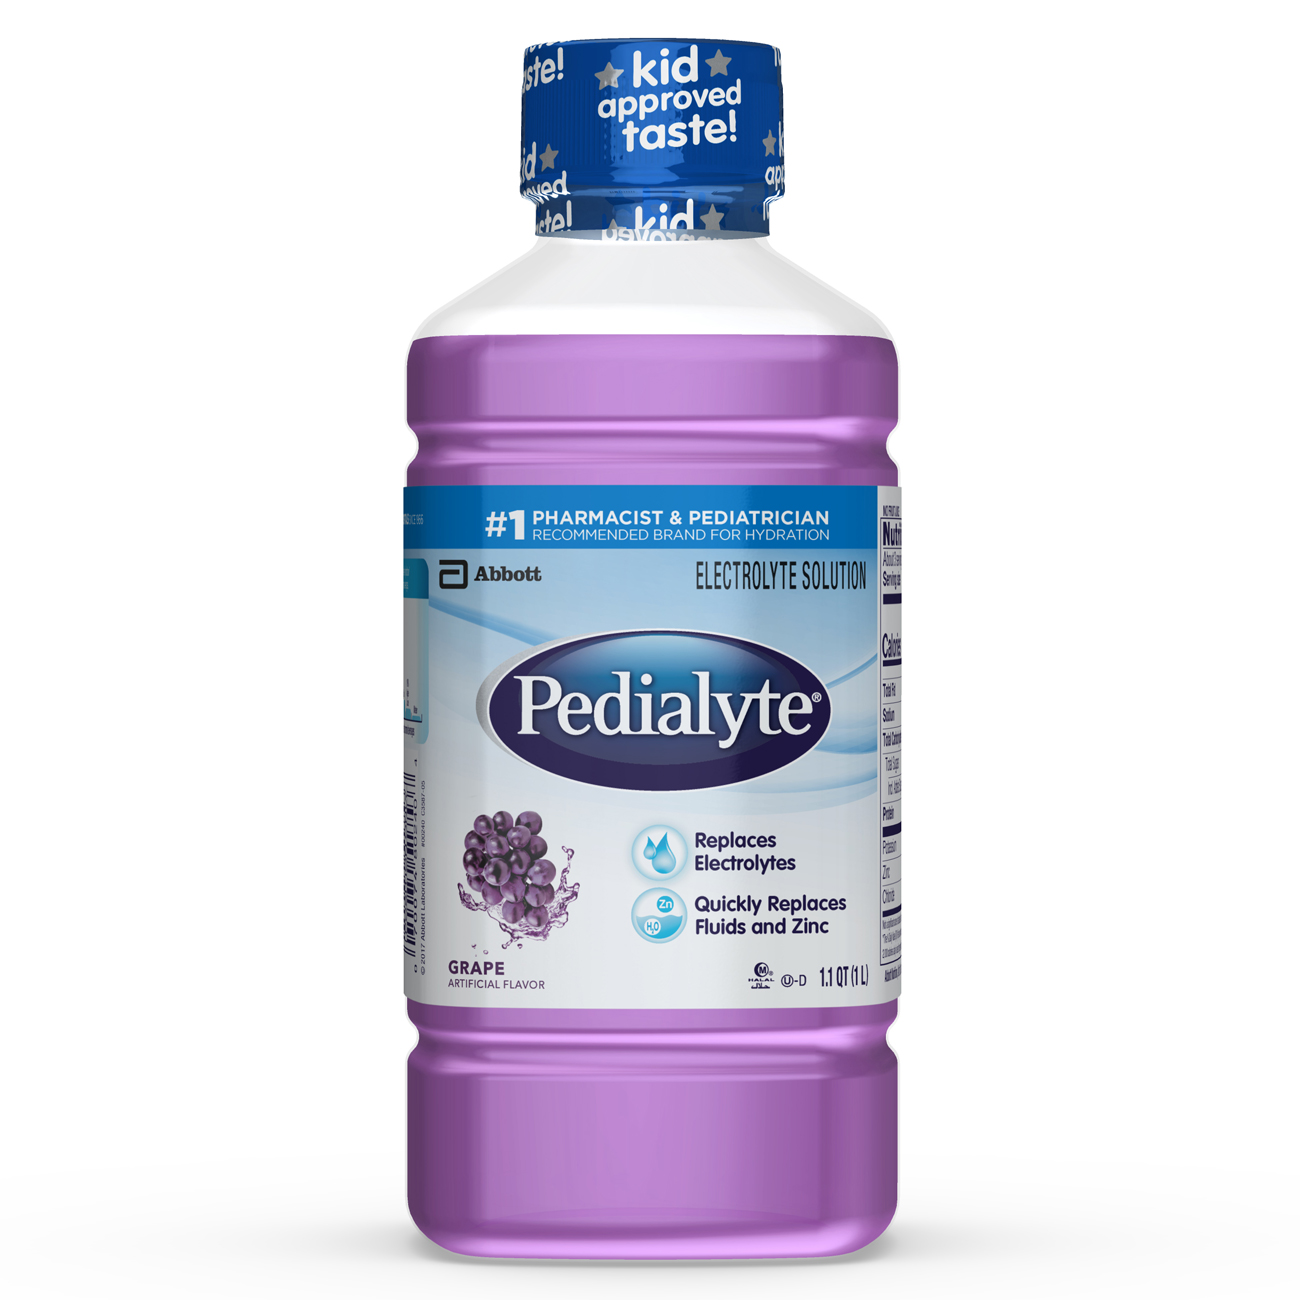 Pedialyte Electrolyte Solution, Hydration Drink, Grape, 1 Liter